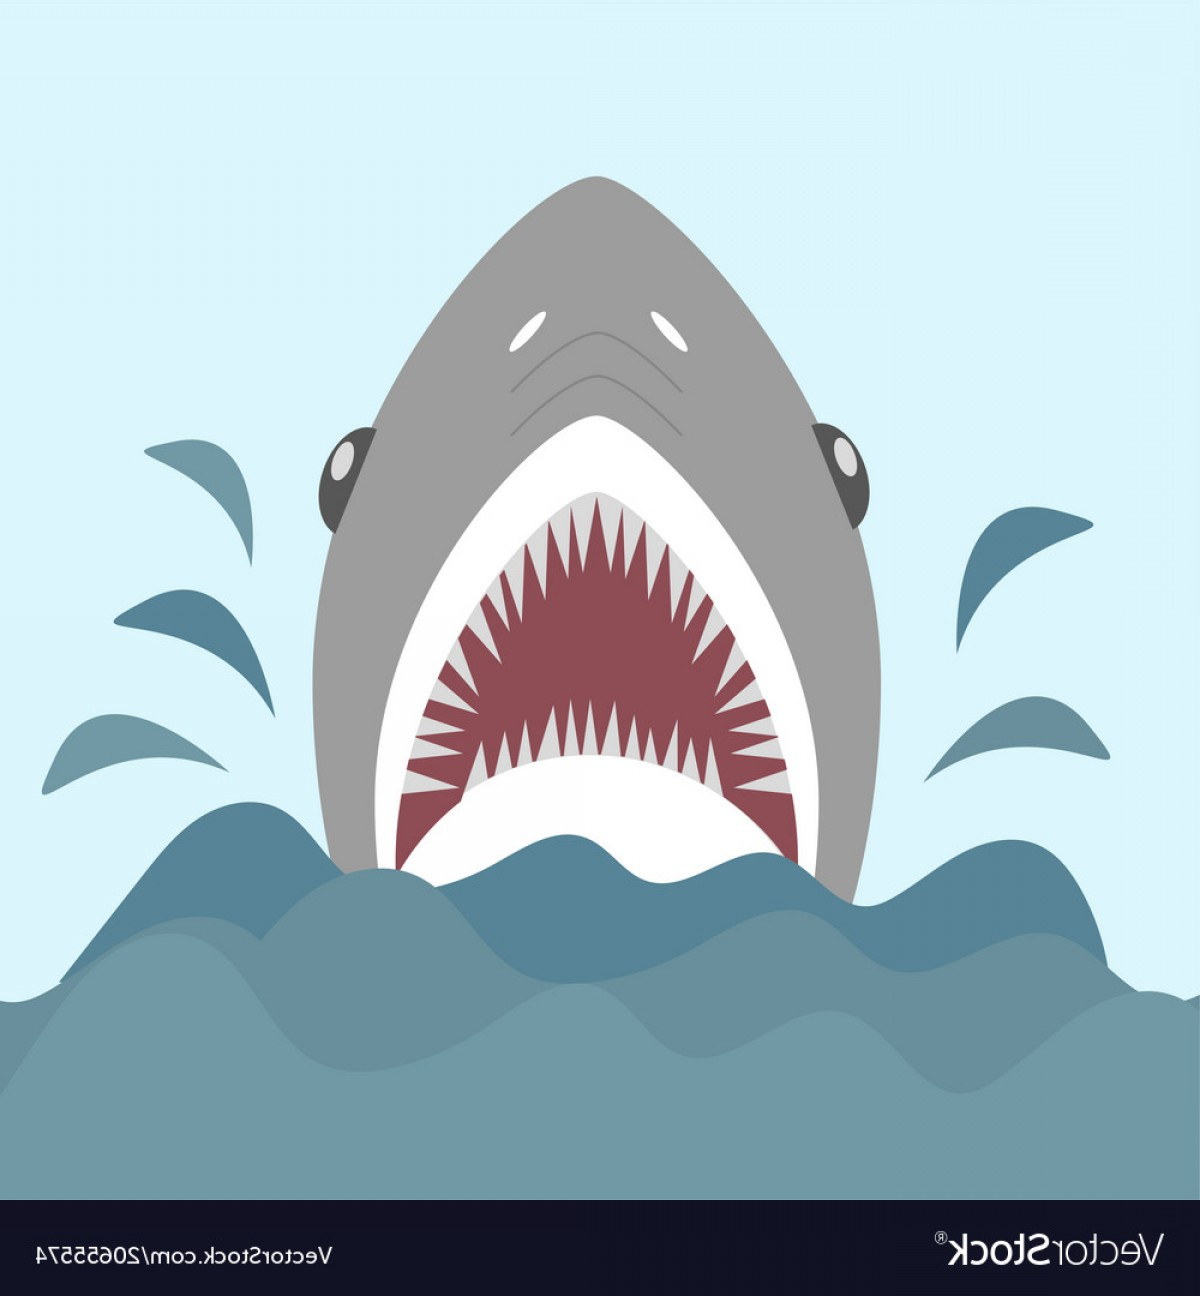 Bull Shark Jaws Vector Art: Shark With Open Jaws And Sharp Teeth Vector